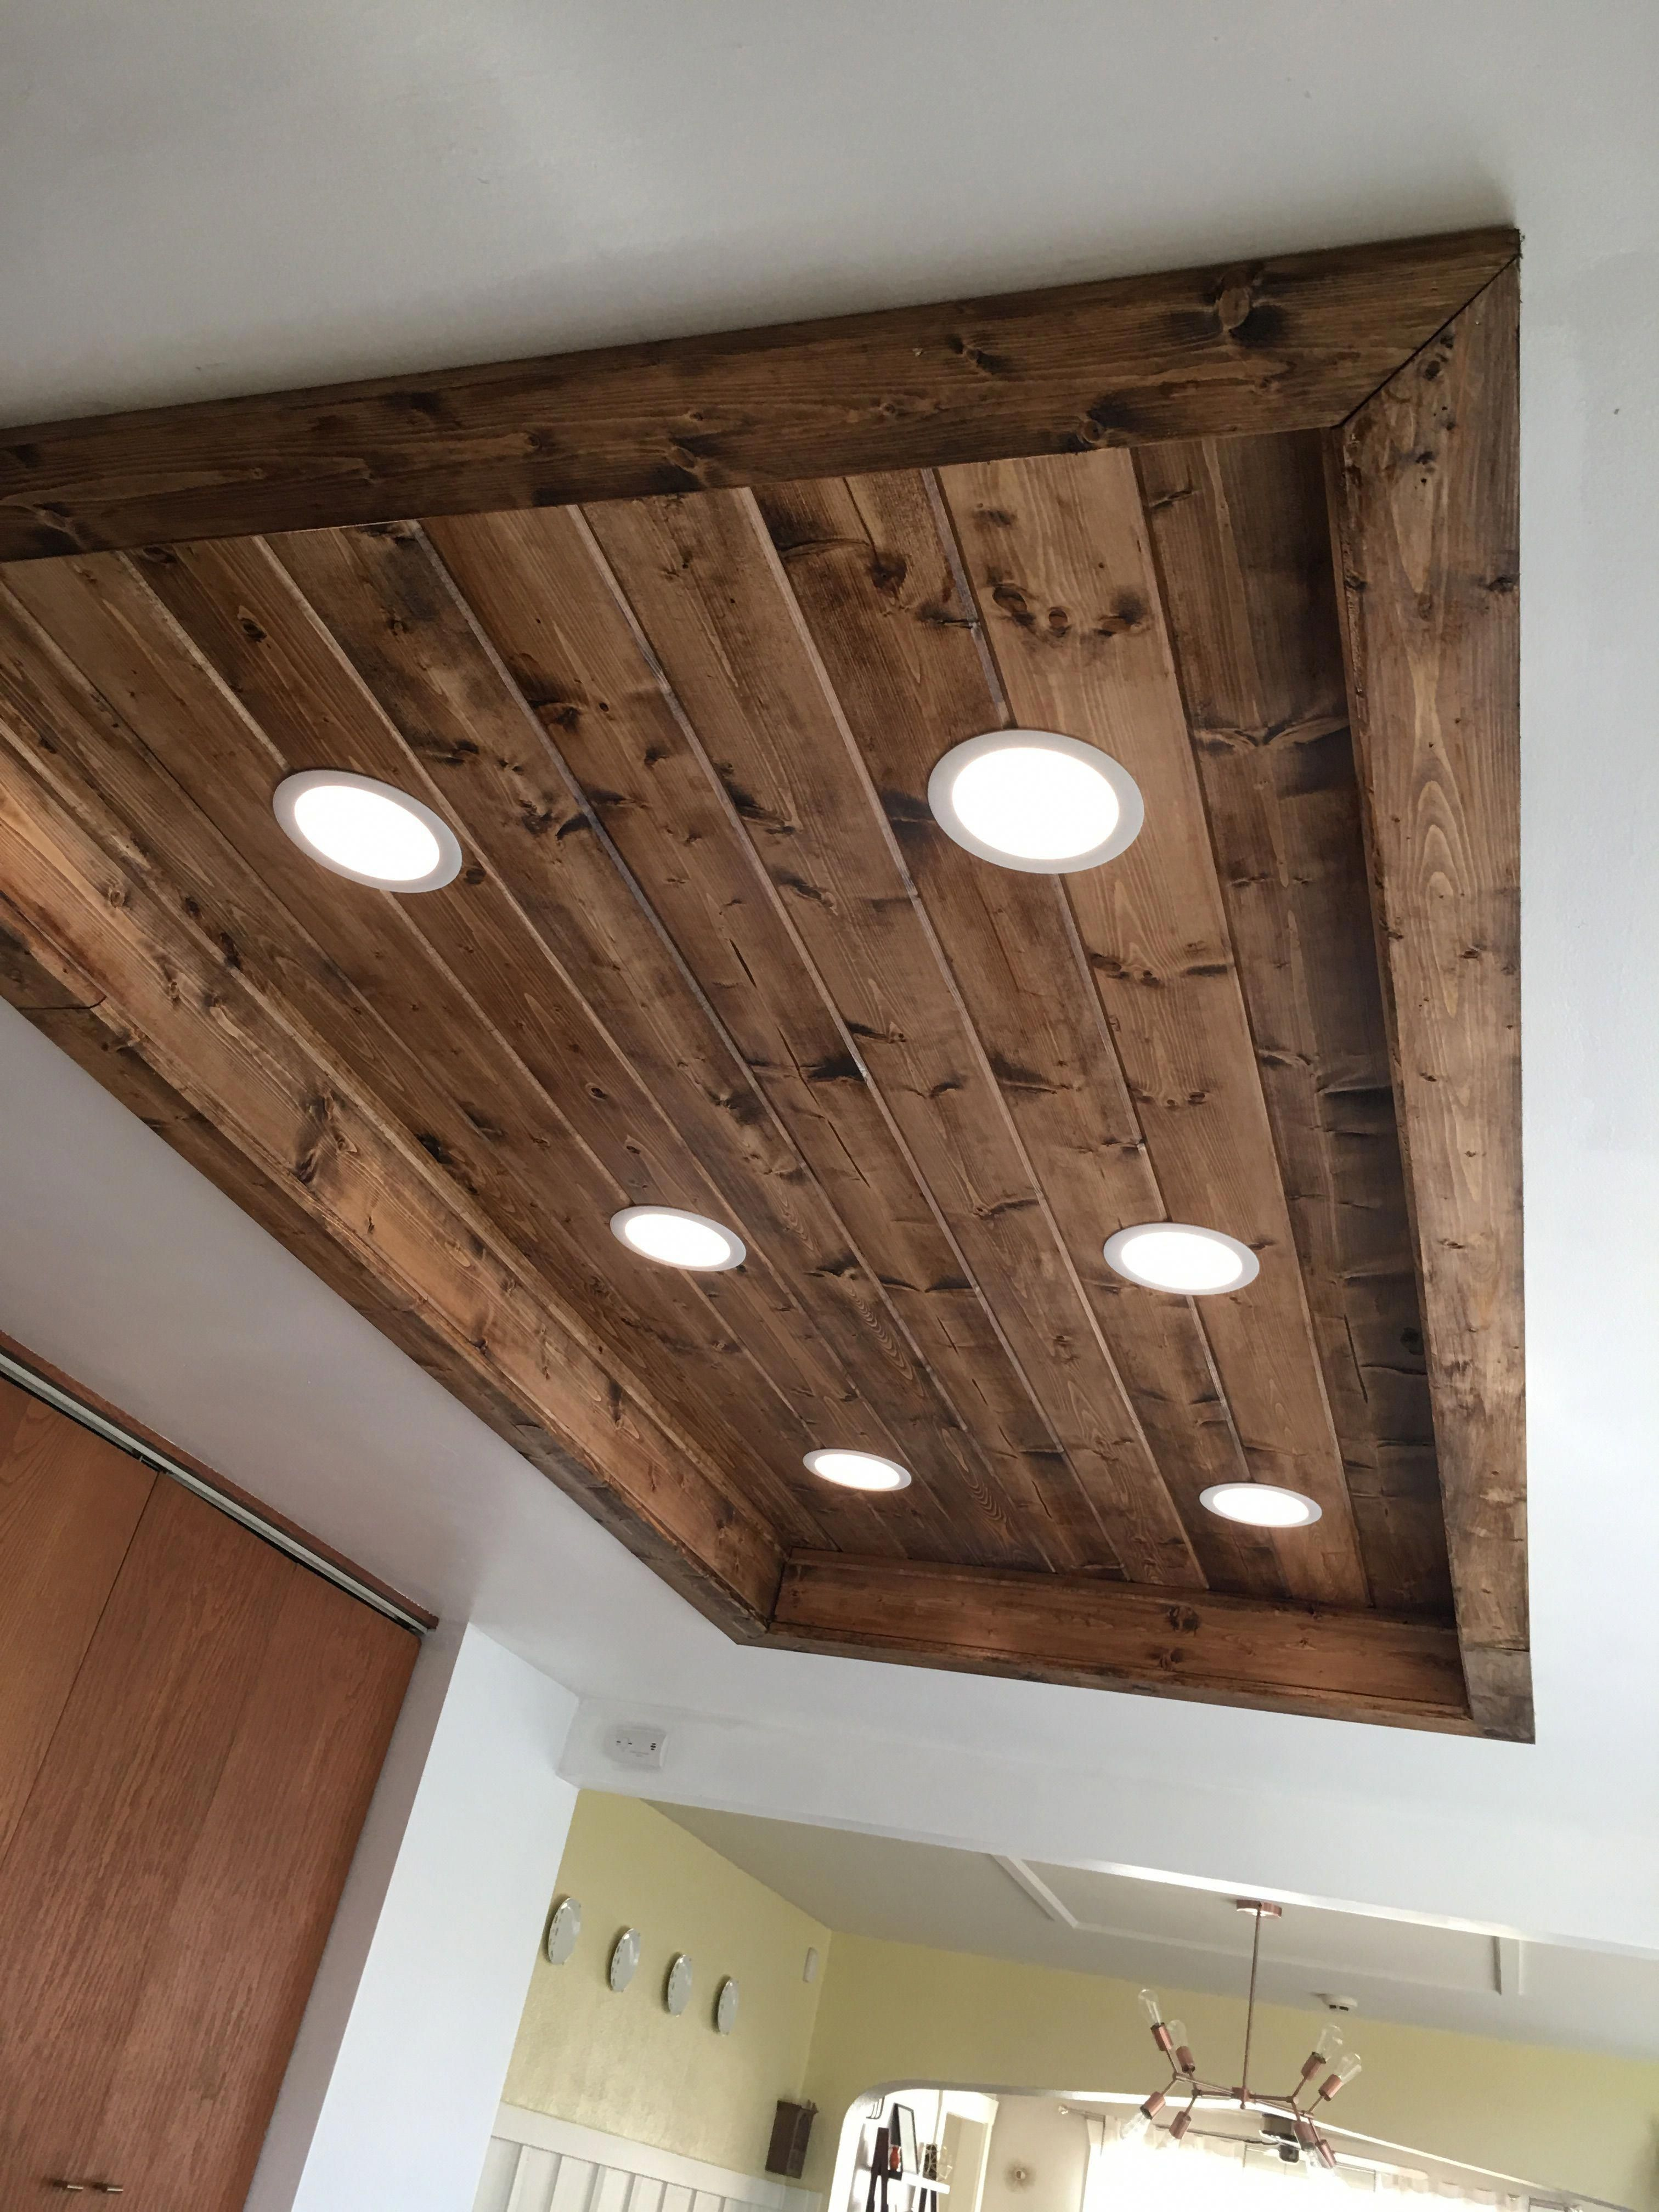 How To Compose A Neat Entrance Kitchen Ceiling Lights Low